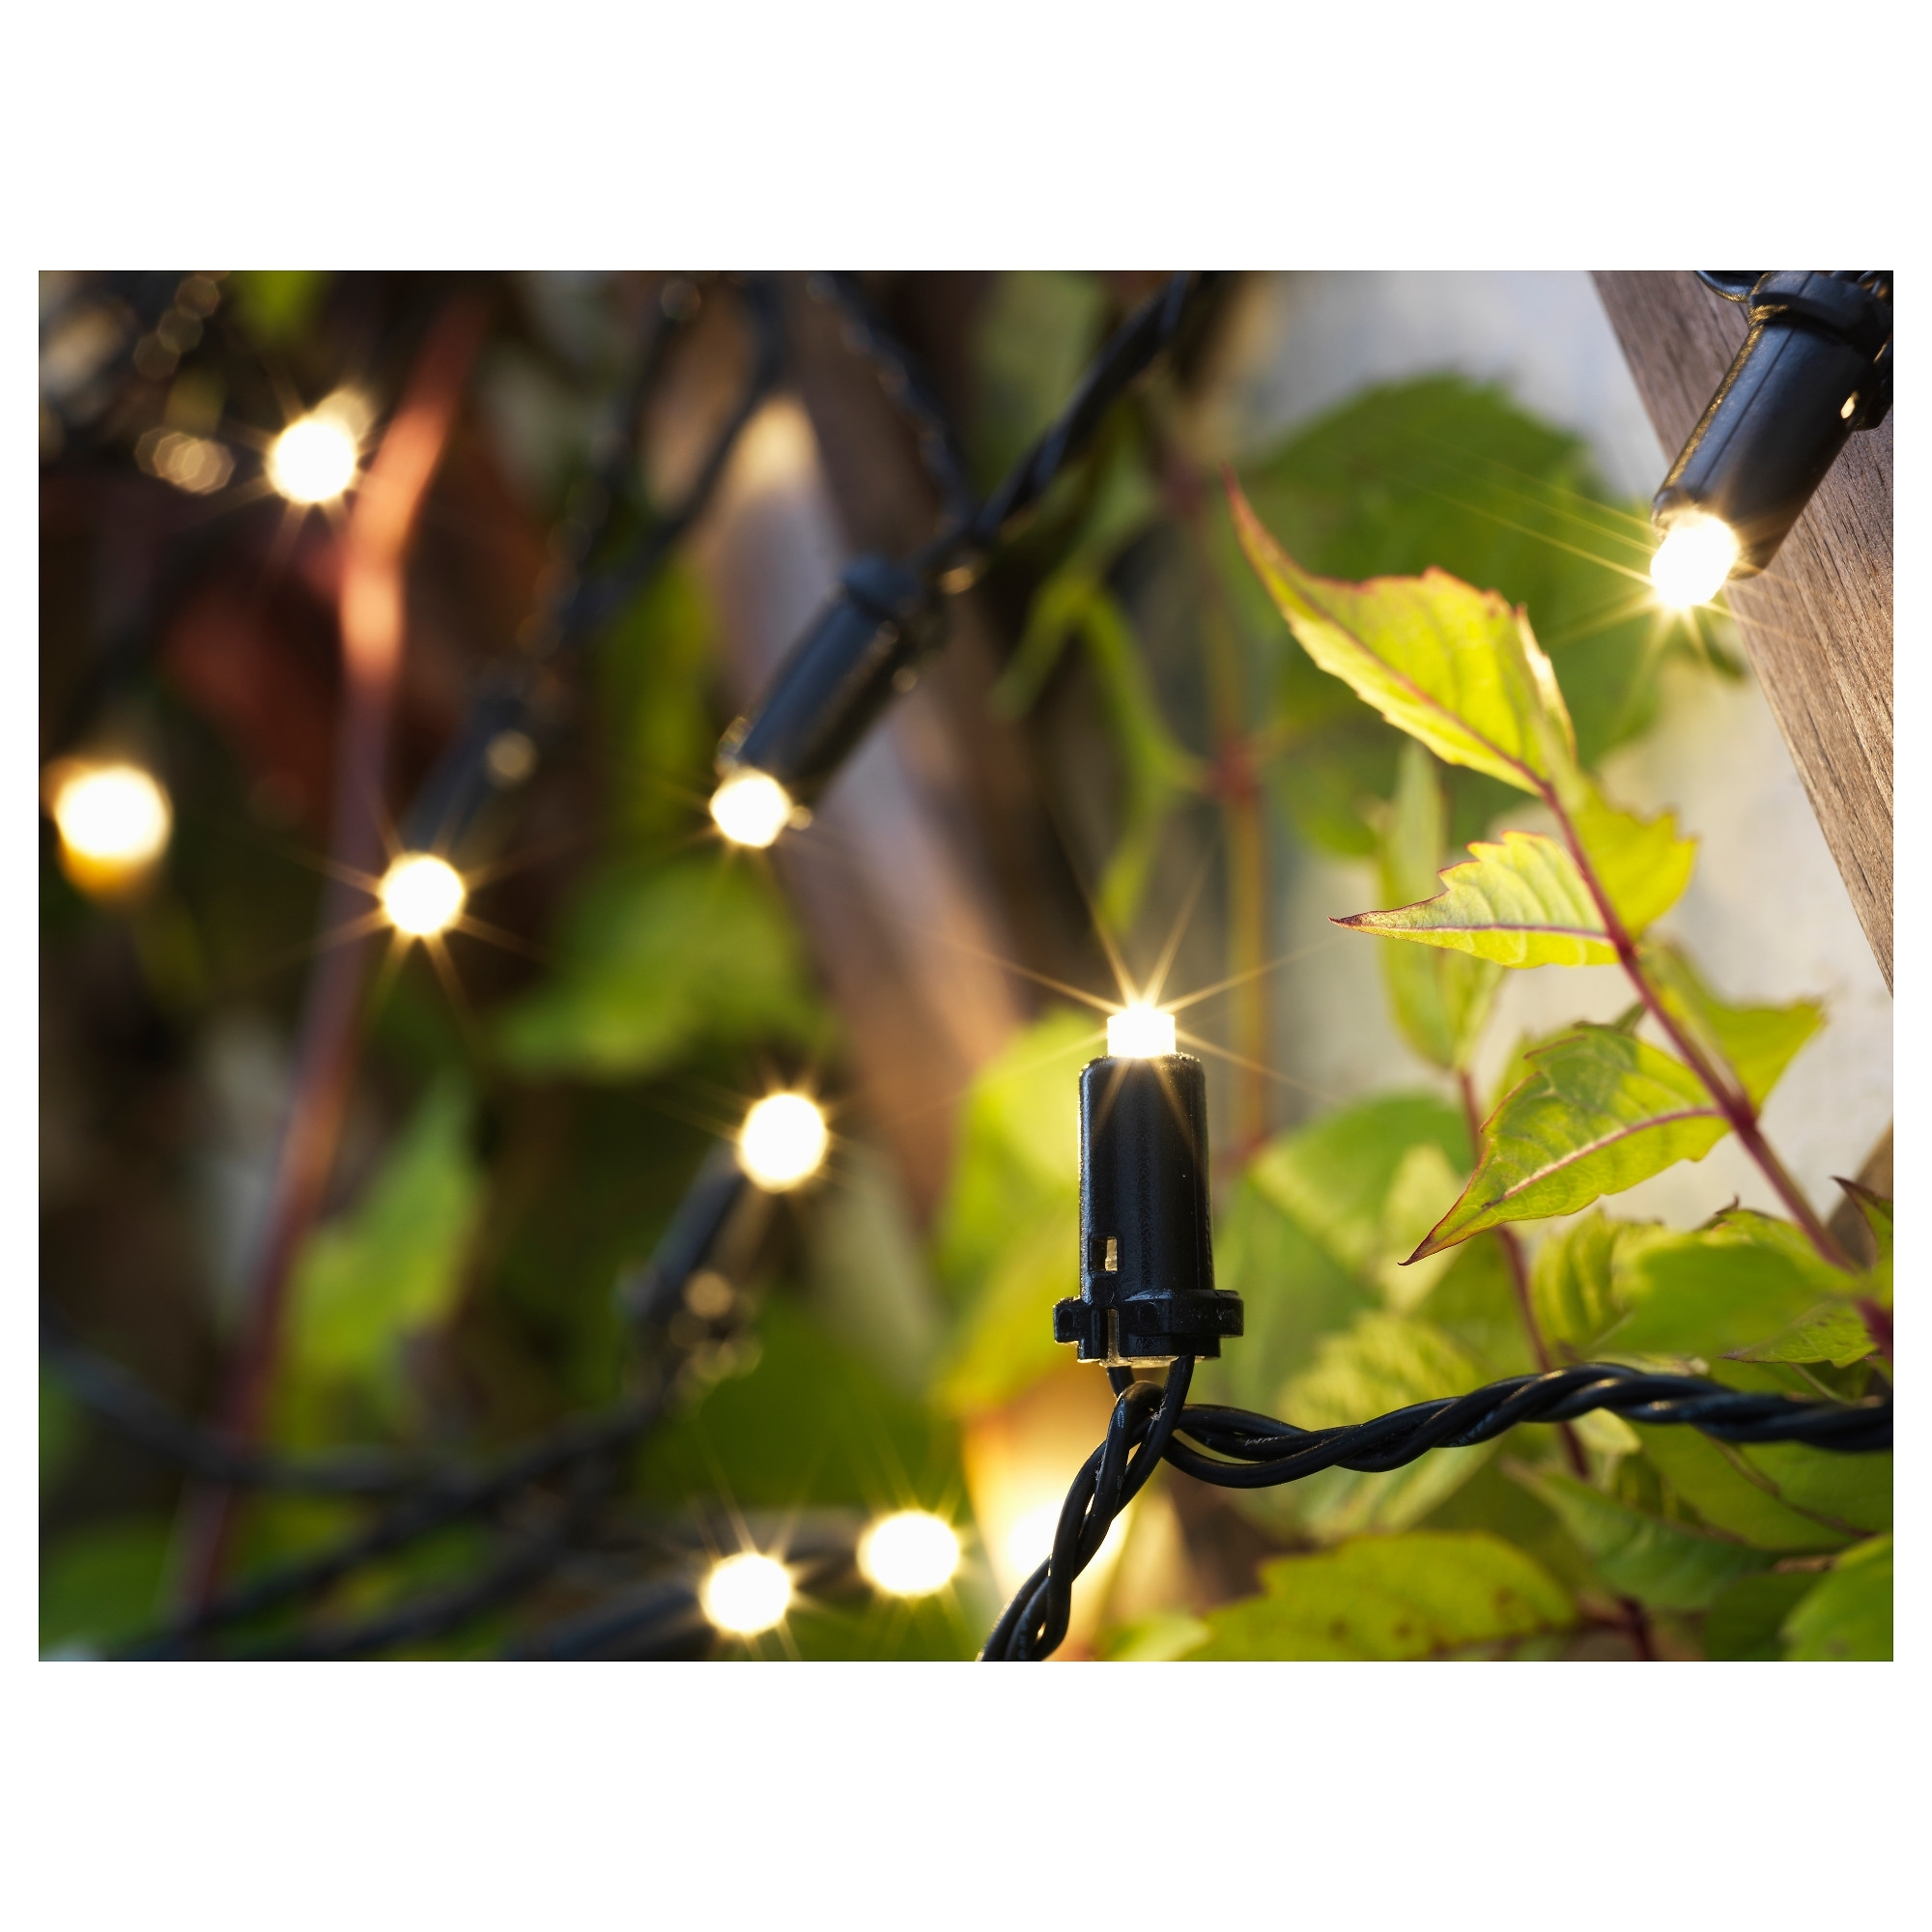 Solarvet Led String Light With 24 Lights – Ikea Intended For Ikea Battery Operated Outdoor Lights (View 12 of 15)